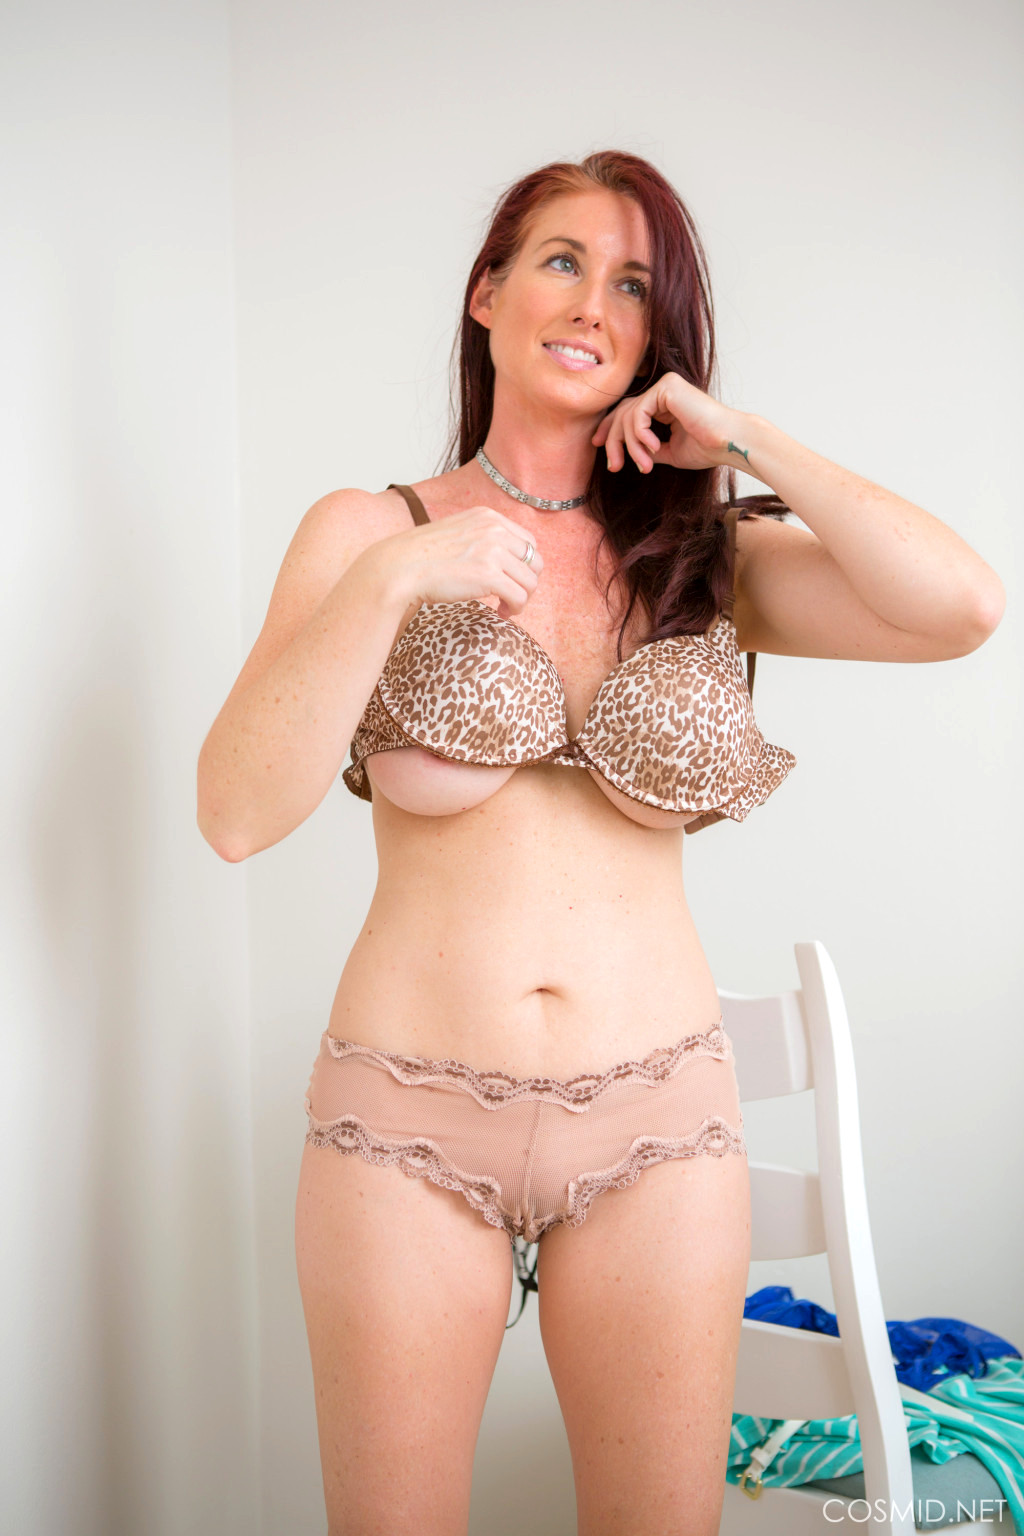 Babe Today Cosmid Cosmid Model Exciting Lingerie Mobi -9762